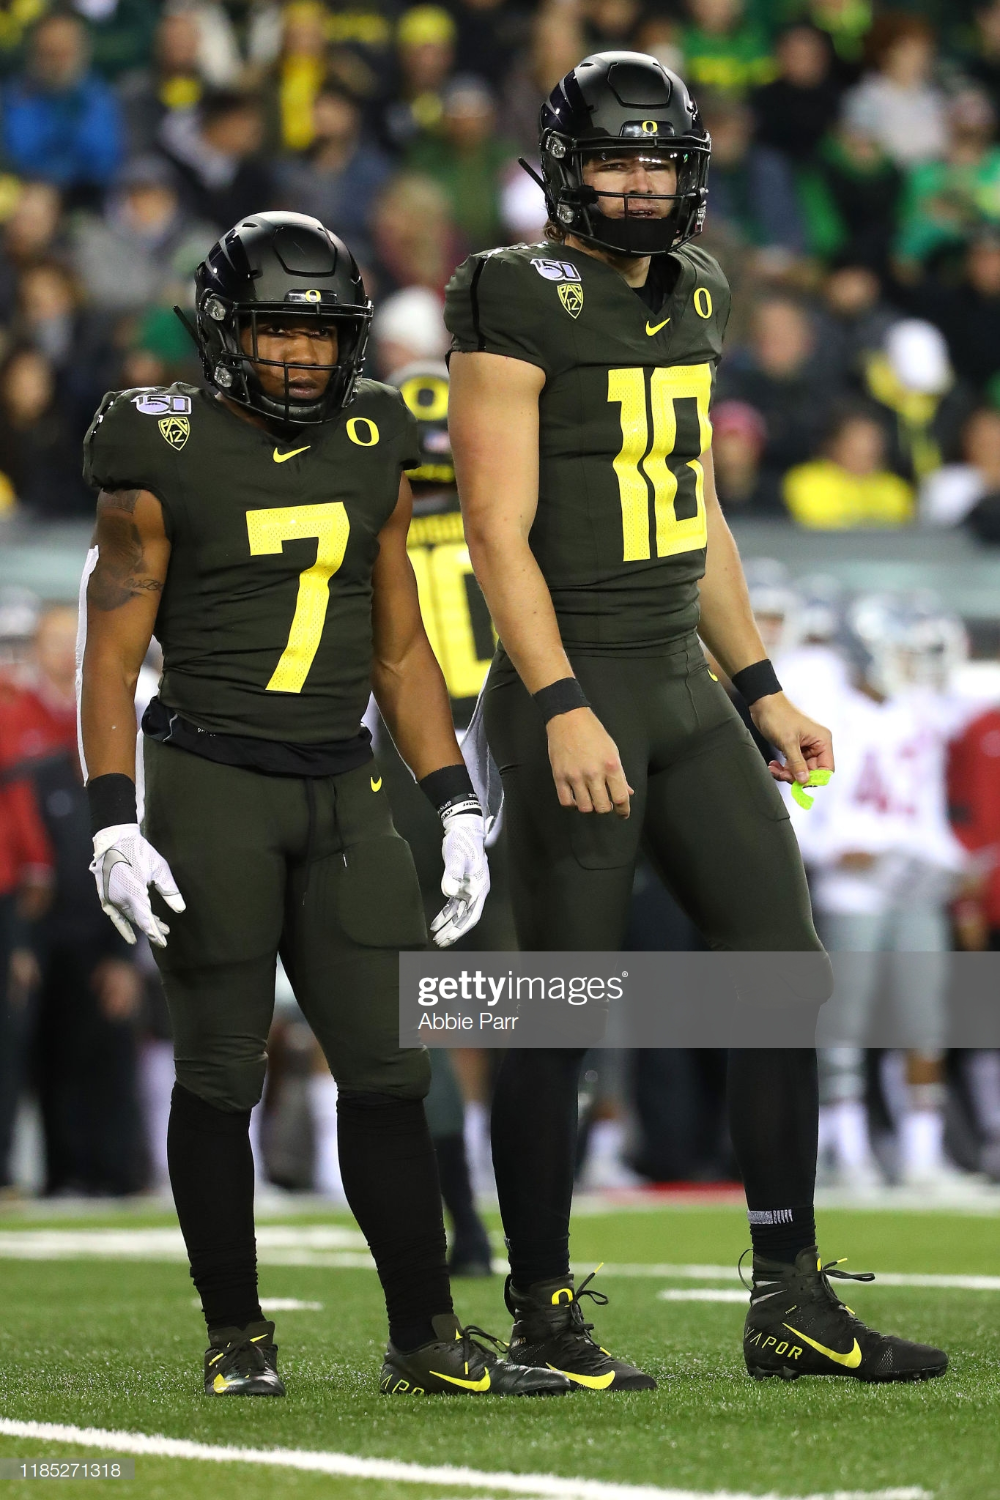 Cj Verdell Of The Oregon Ducks And Justin Herbert Of The Oregon Ducks In 2020 Oregon Ducks Oregon Ducks Football Ohio State Buckeyes Football